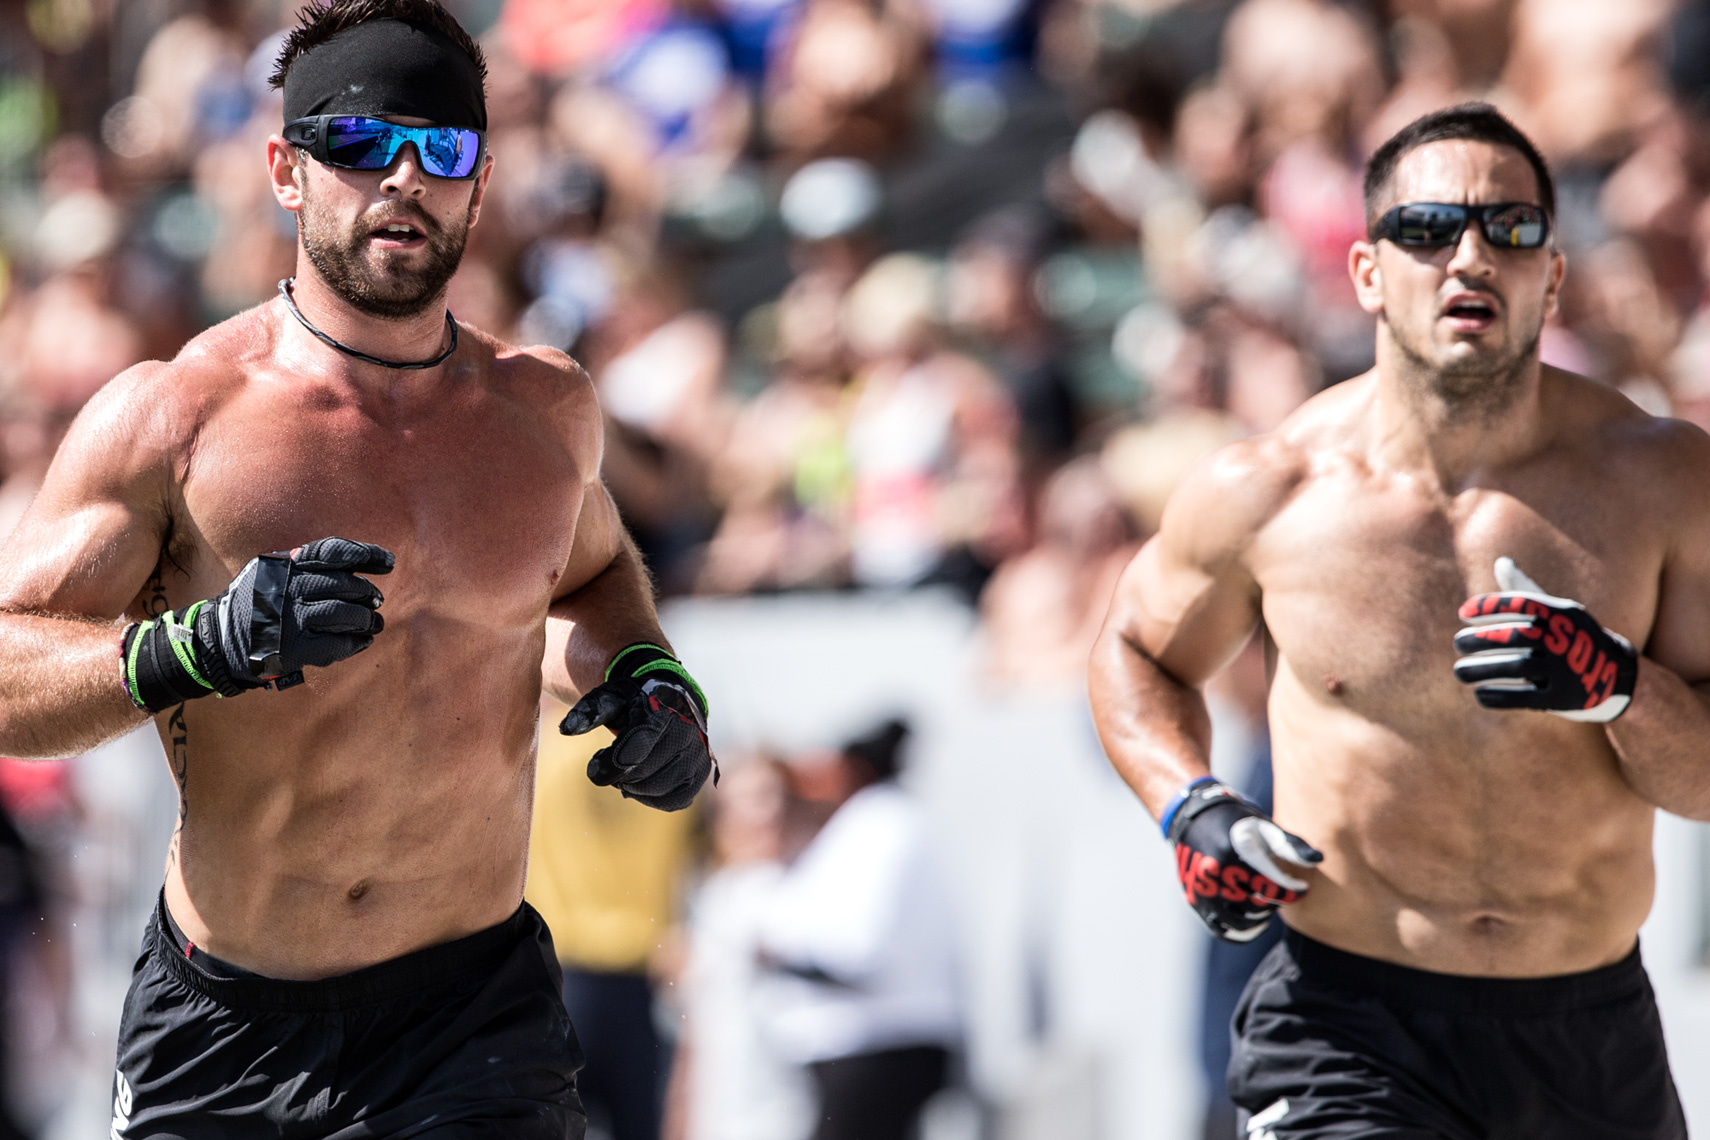 Los Angeles Sports Photography, Michael Brian, athlete, Crossfit, Rich Froning,  Fittest Man on Earth, running with Jason Khalipa, Reebok Crossfit Games champion, Rogue, StubHub Center